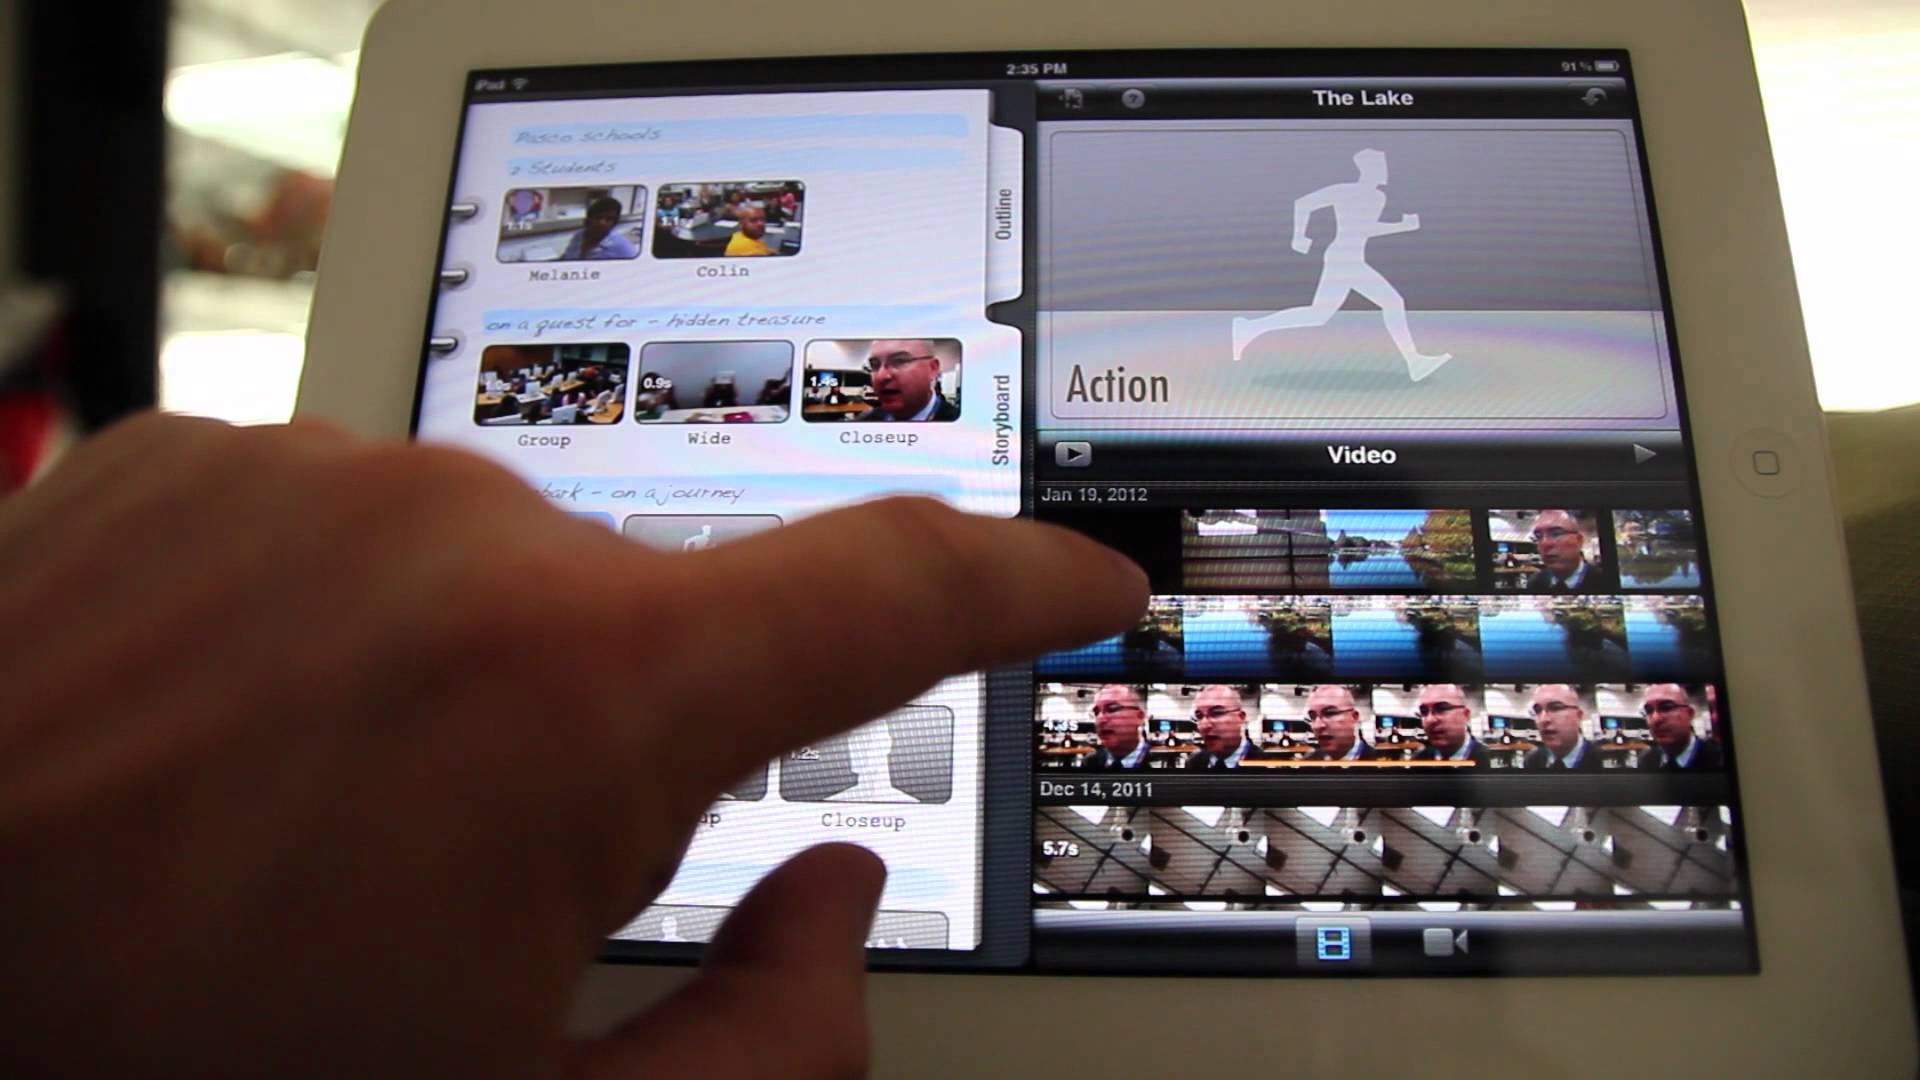 How To Make A Movie On iPhone Or iPad With iMovie